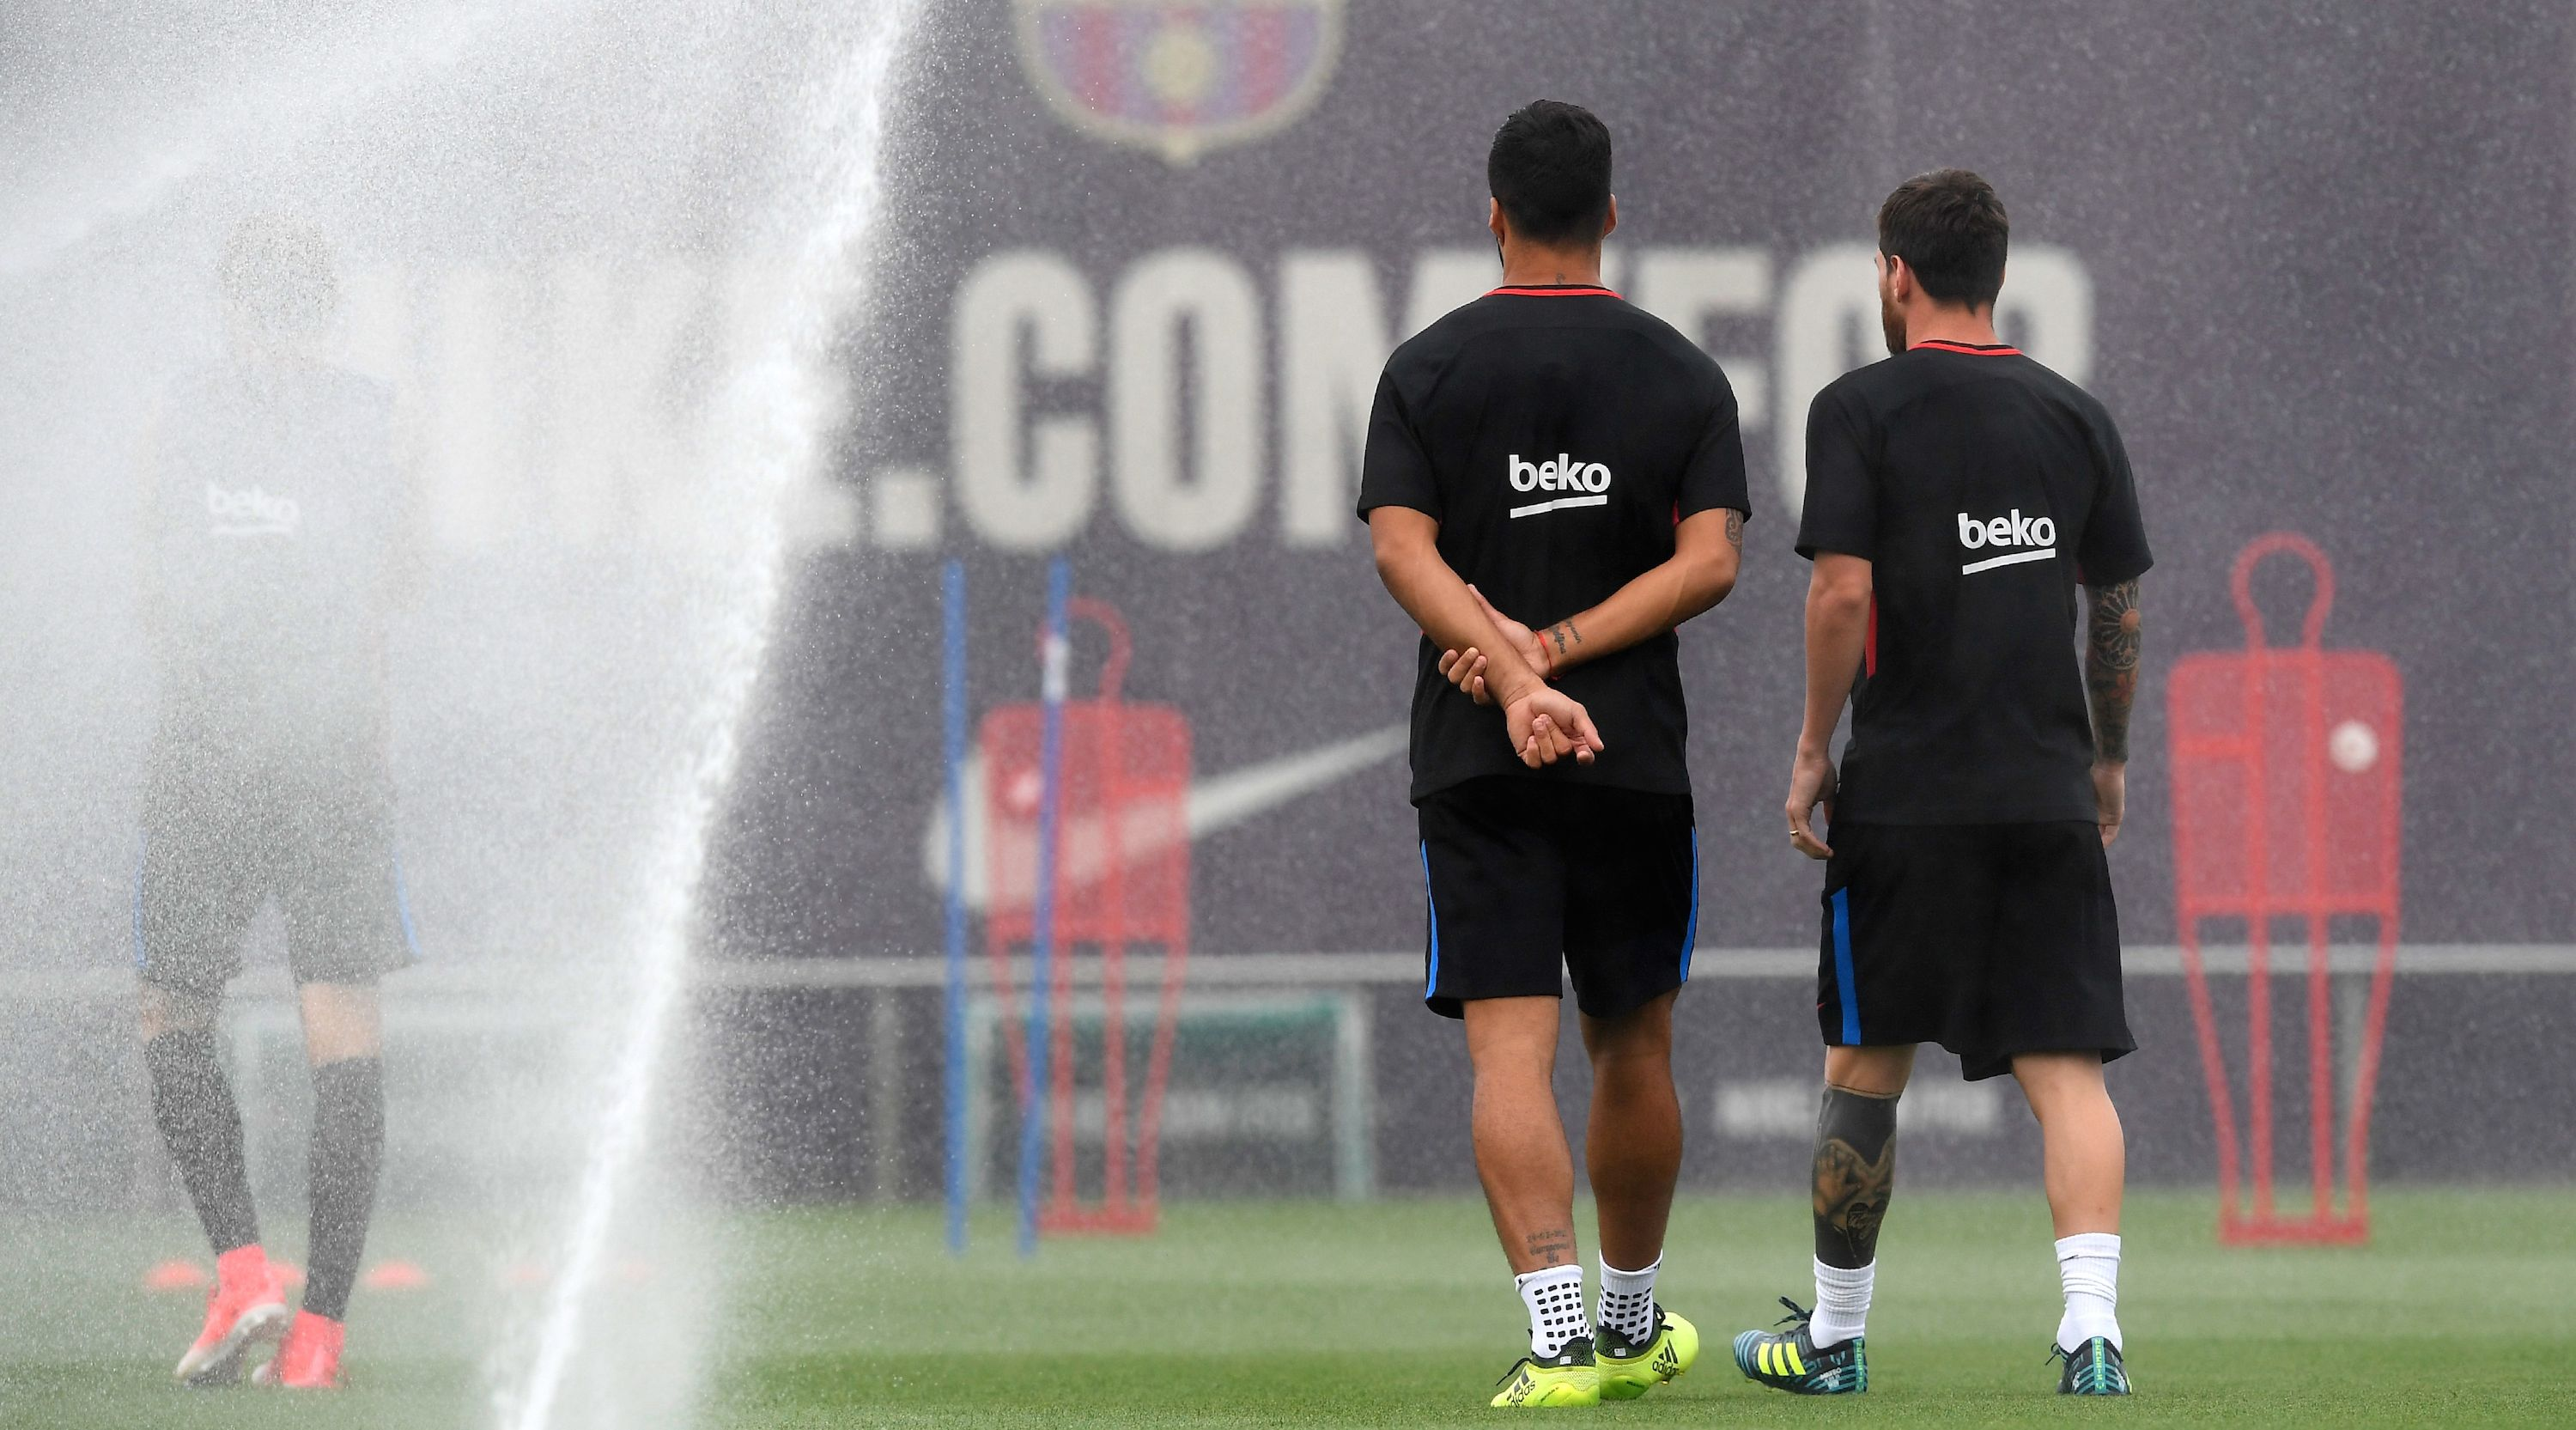 Barcelona's Argentinian forward Lionel Messi (R) talks with Barcelona's Uruguayan forward Luis Suarez (L) during a training session at the Sports Center FC Barcelona Joan Gamper in Sant Joan Despi, near Barcelona on August 15, 2017, on the eve of the Spanish Supercup second leg football match Real Madrid vs FC Barcelona. / AFP PHOTO / LLUIS GENE (Photo credit should read LLUIS GENE/AFP/Getty Images)